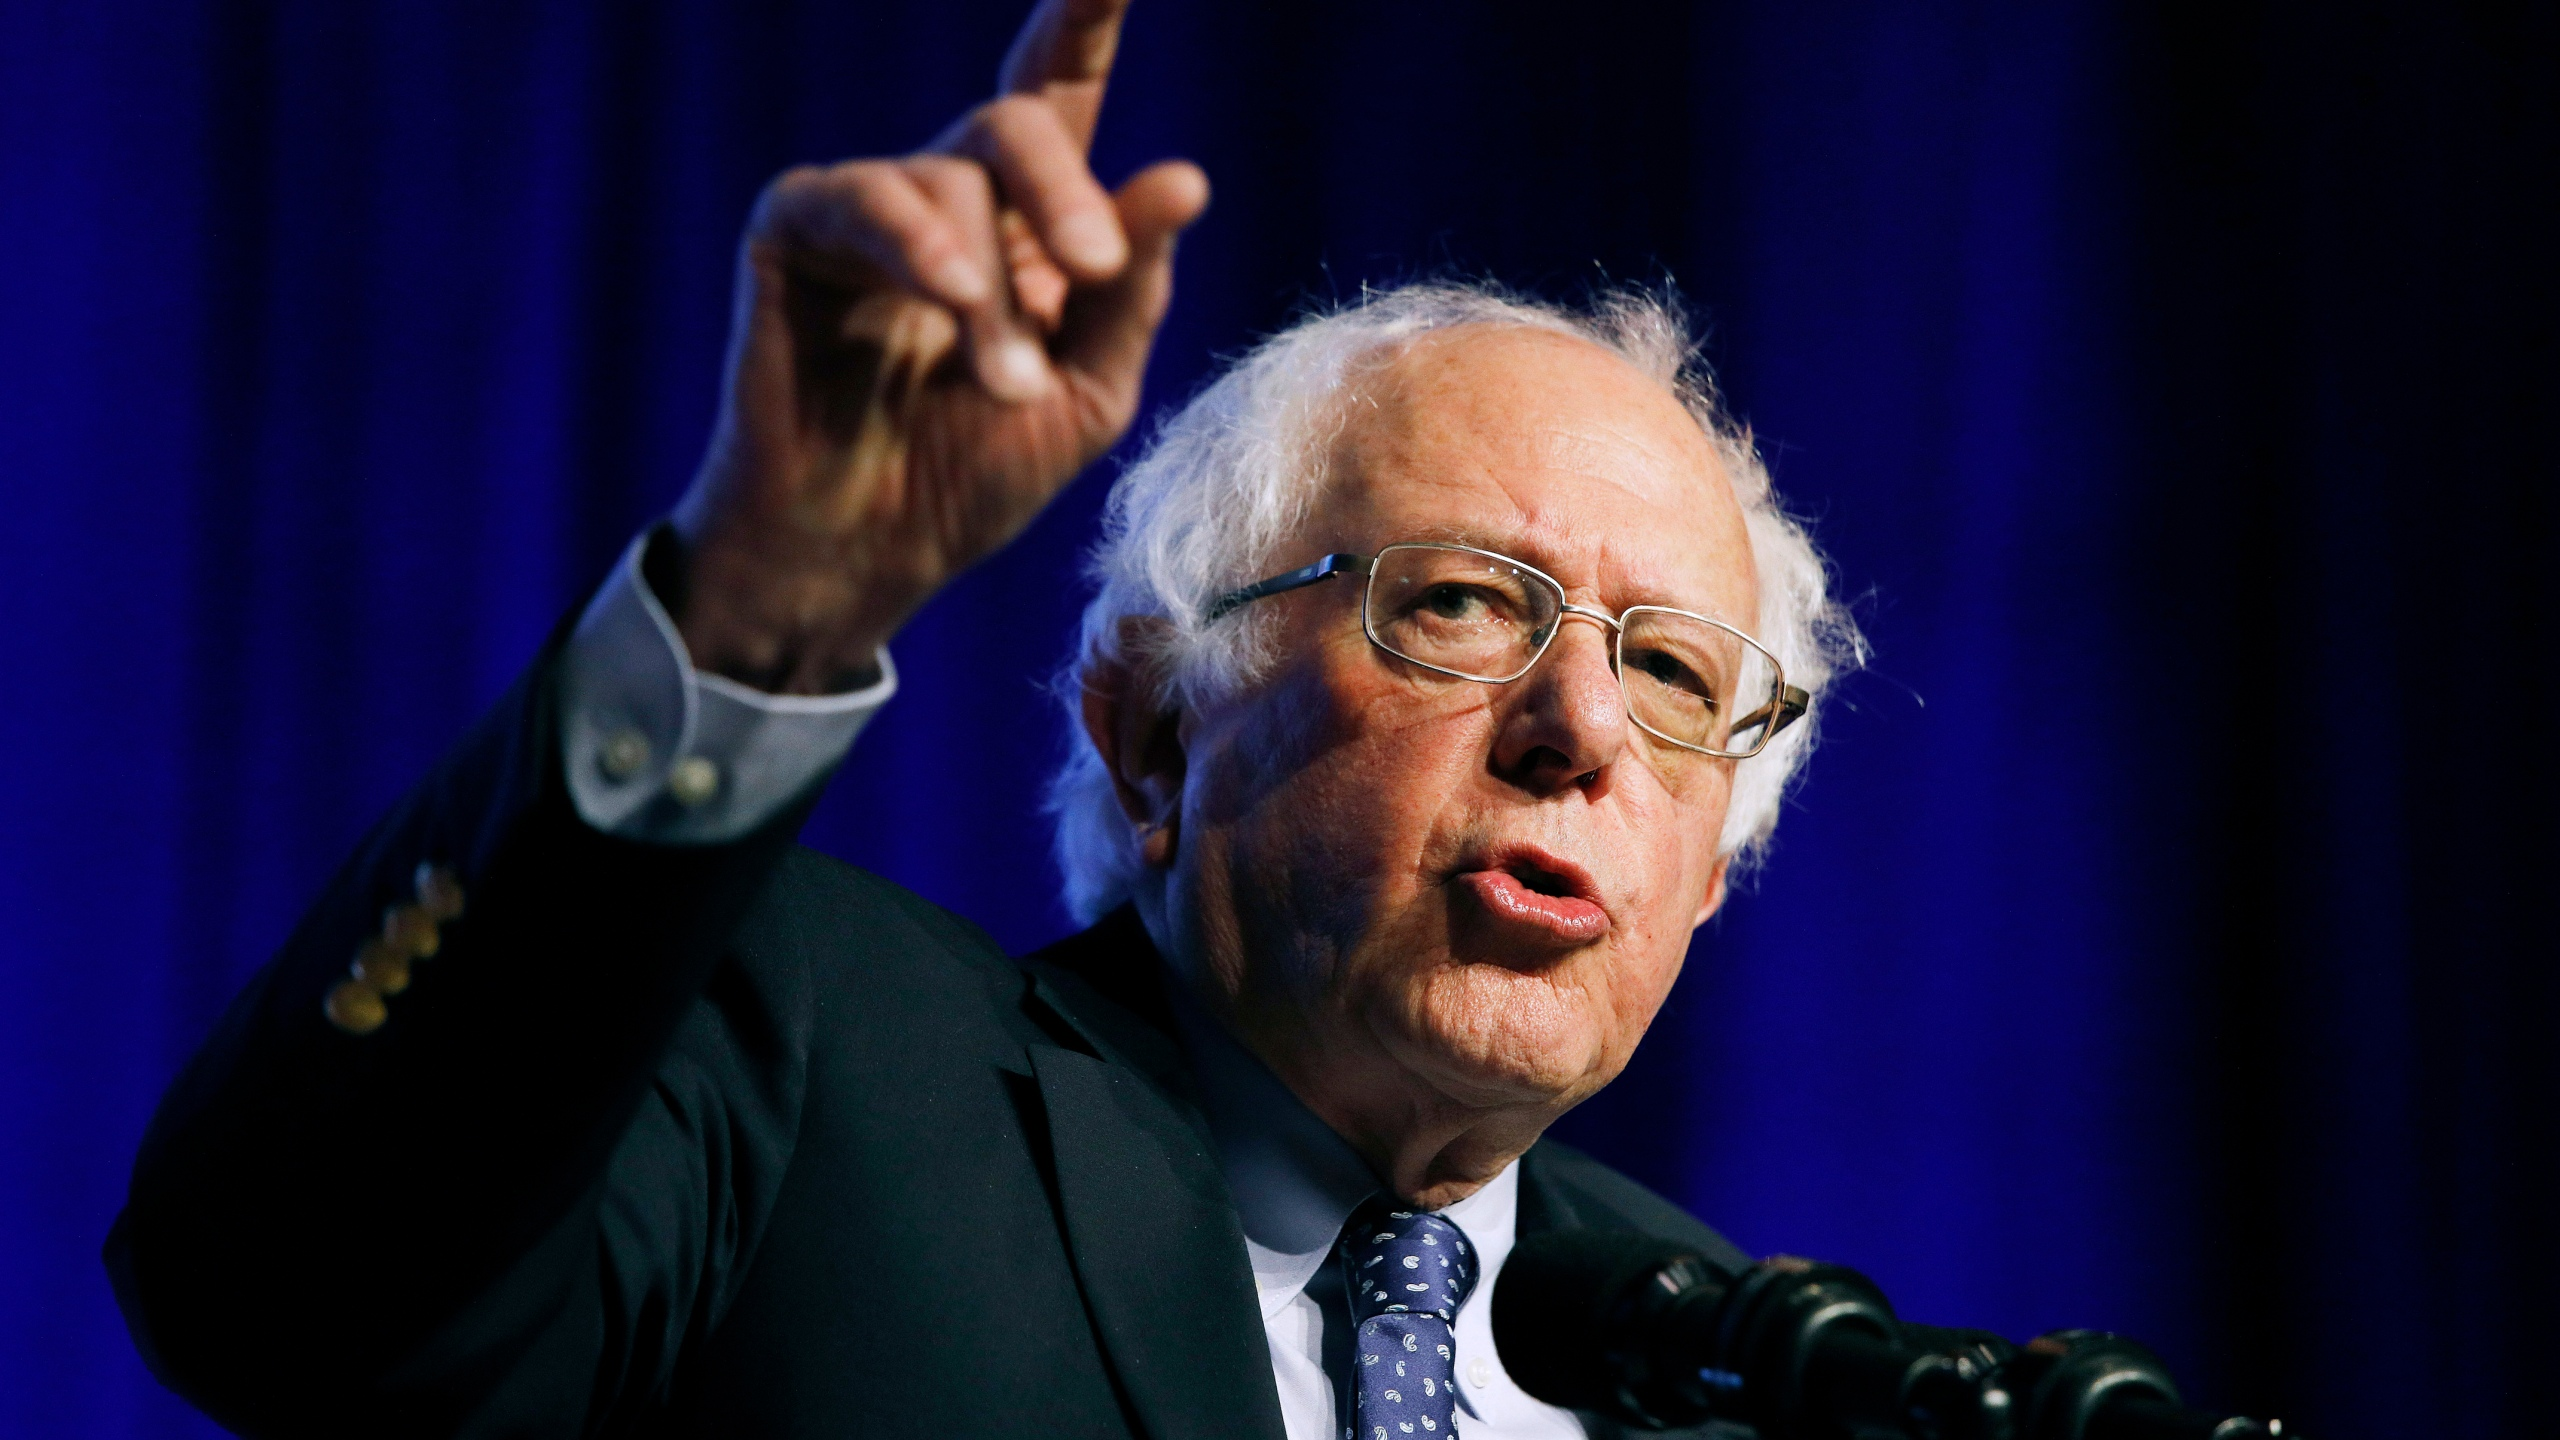 Sanders starts Midwest campaign swing with Wisconsin rally